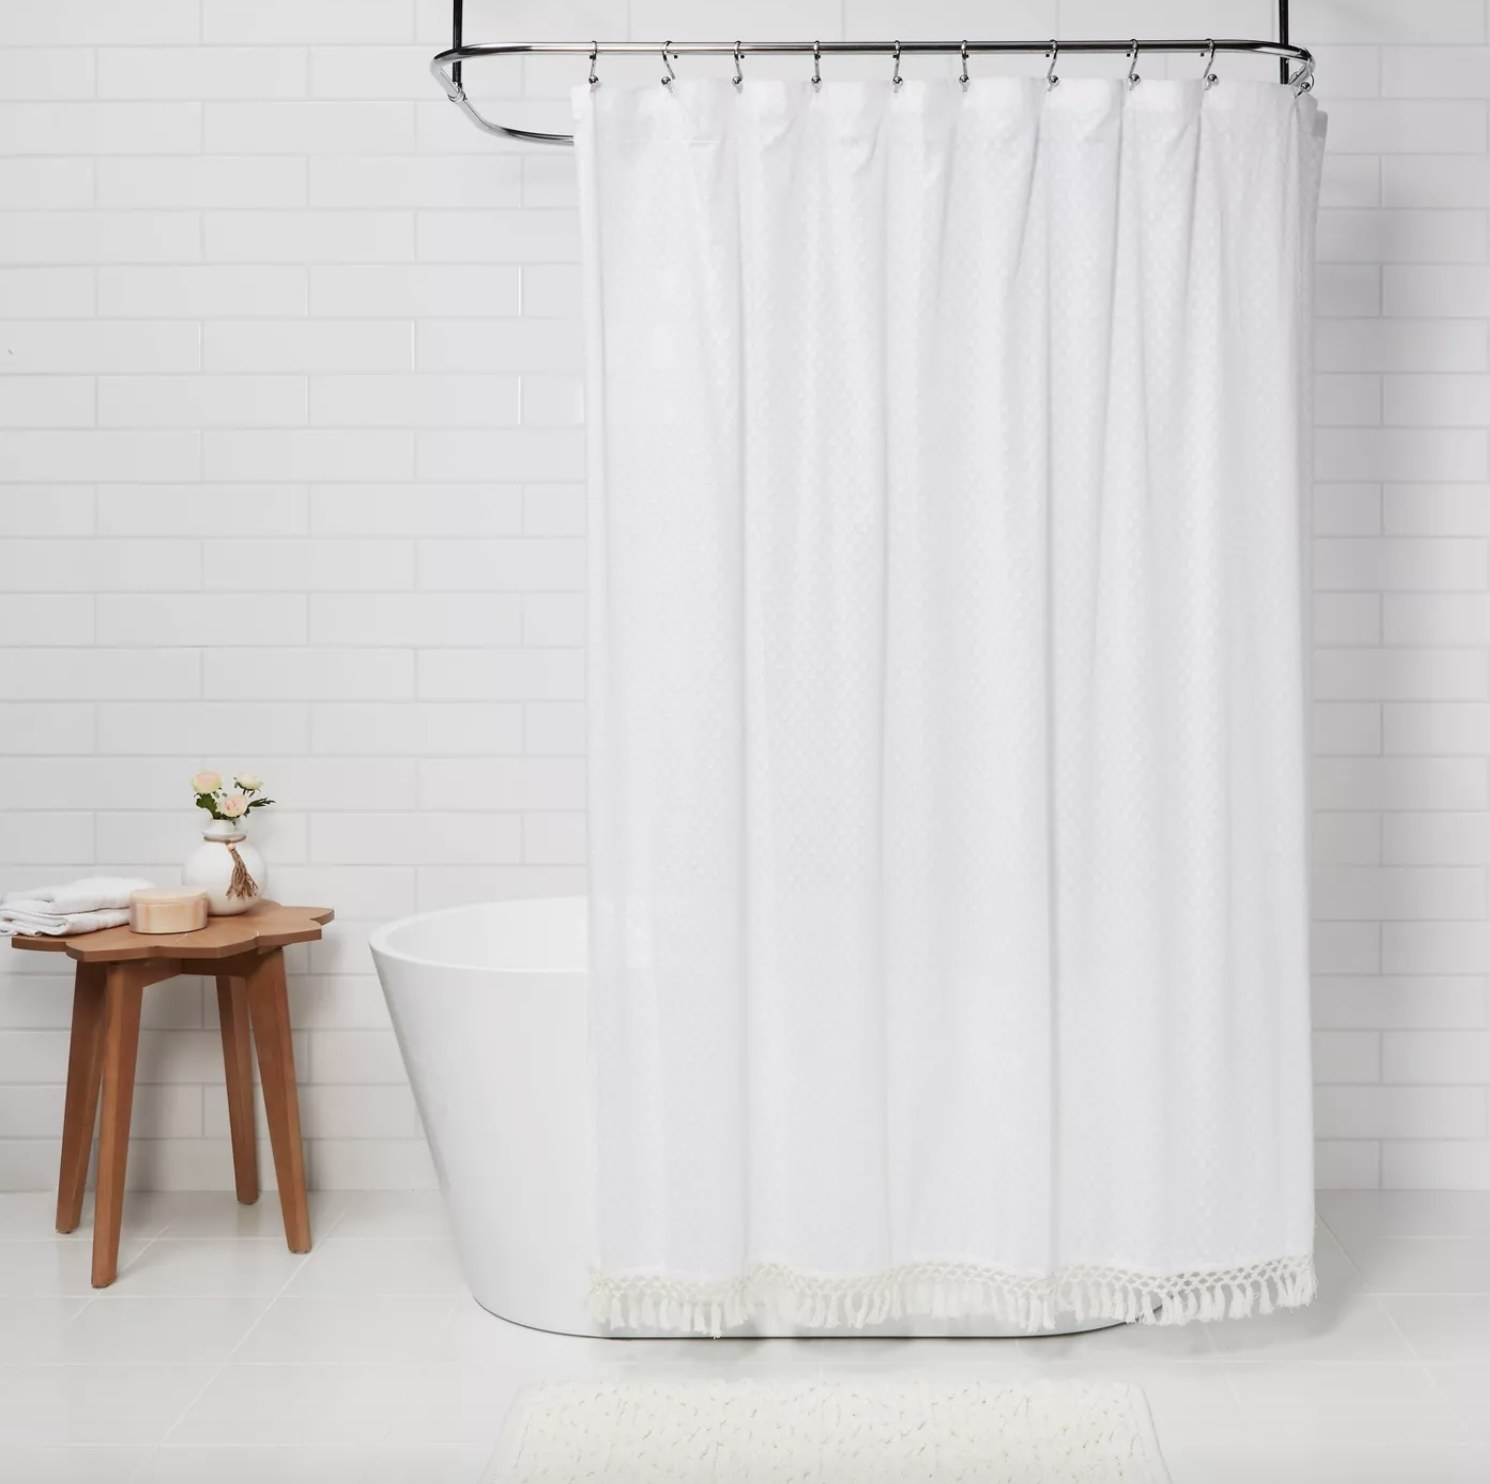 Shower curtain hung on shower rod.